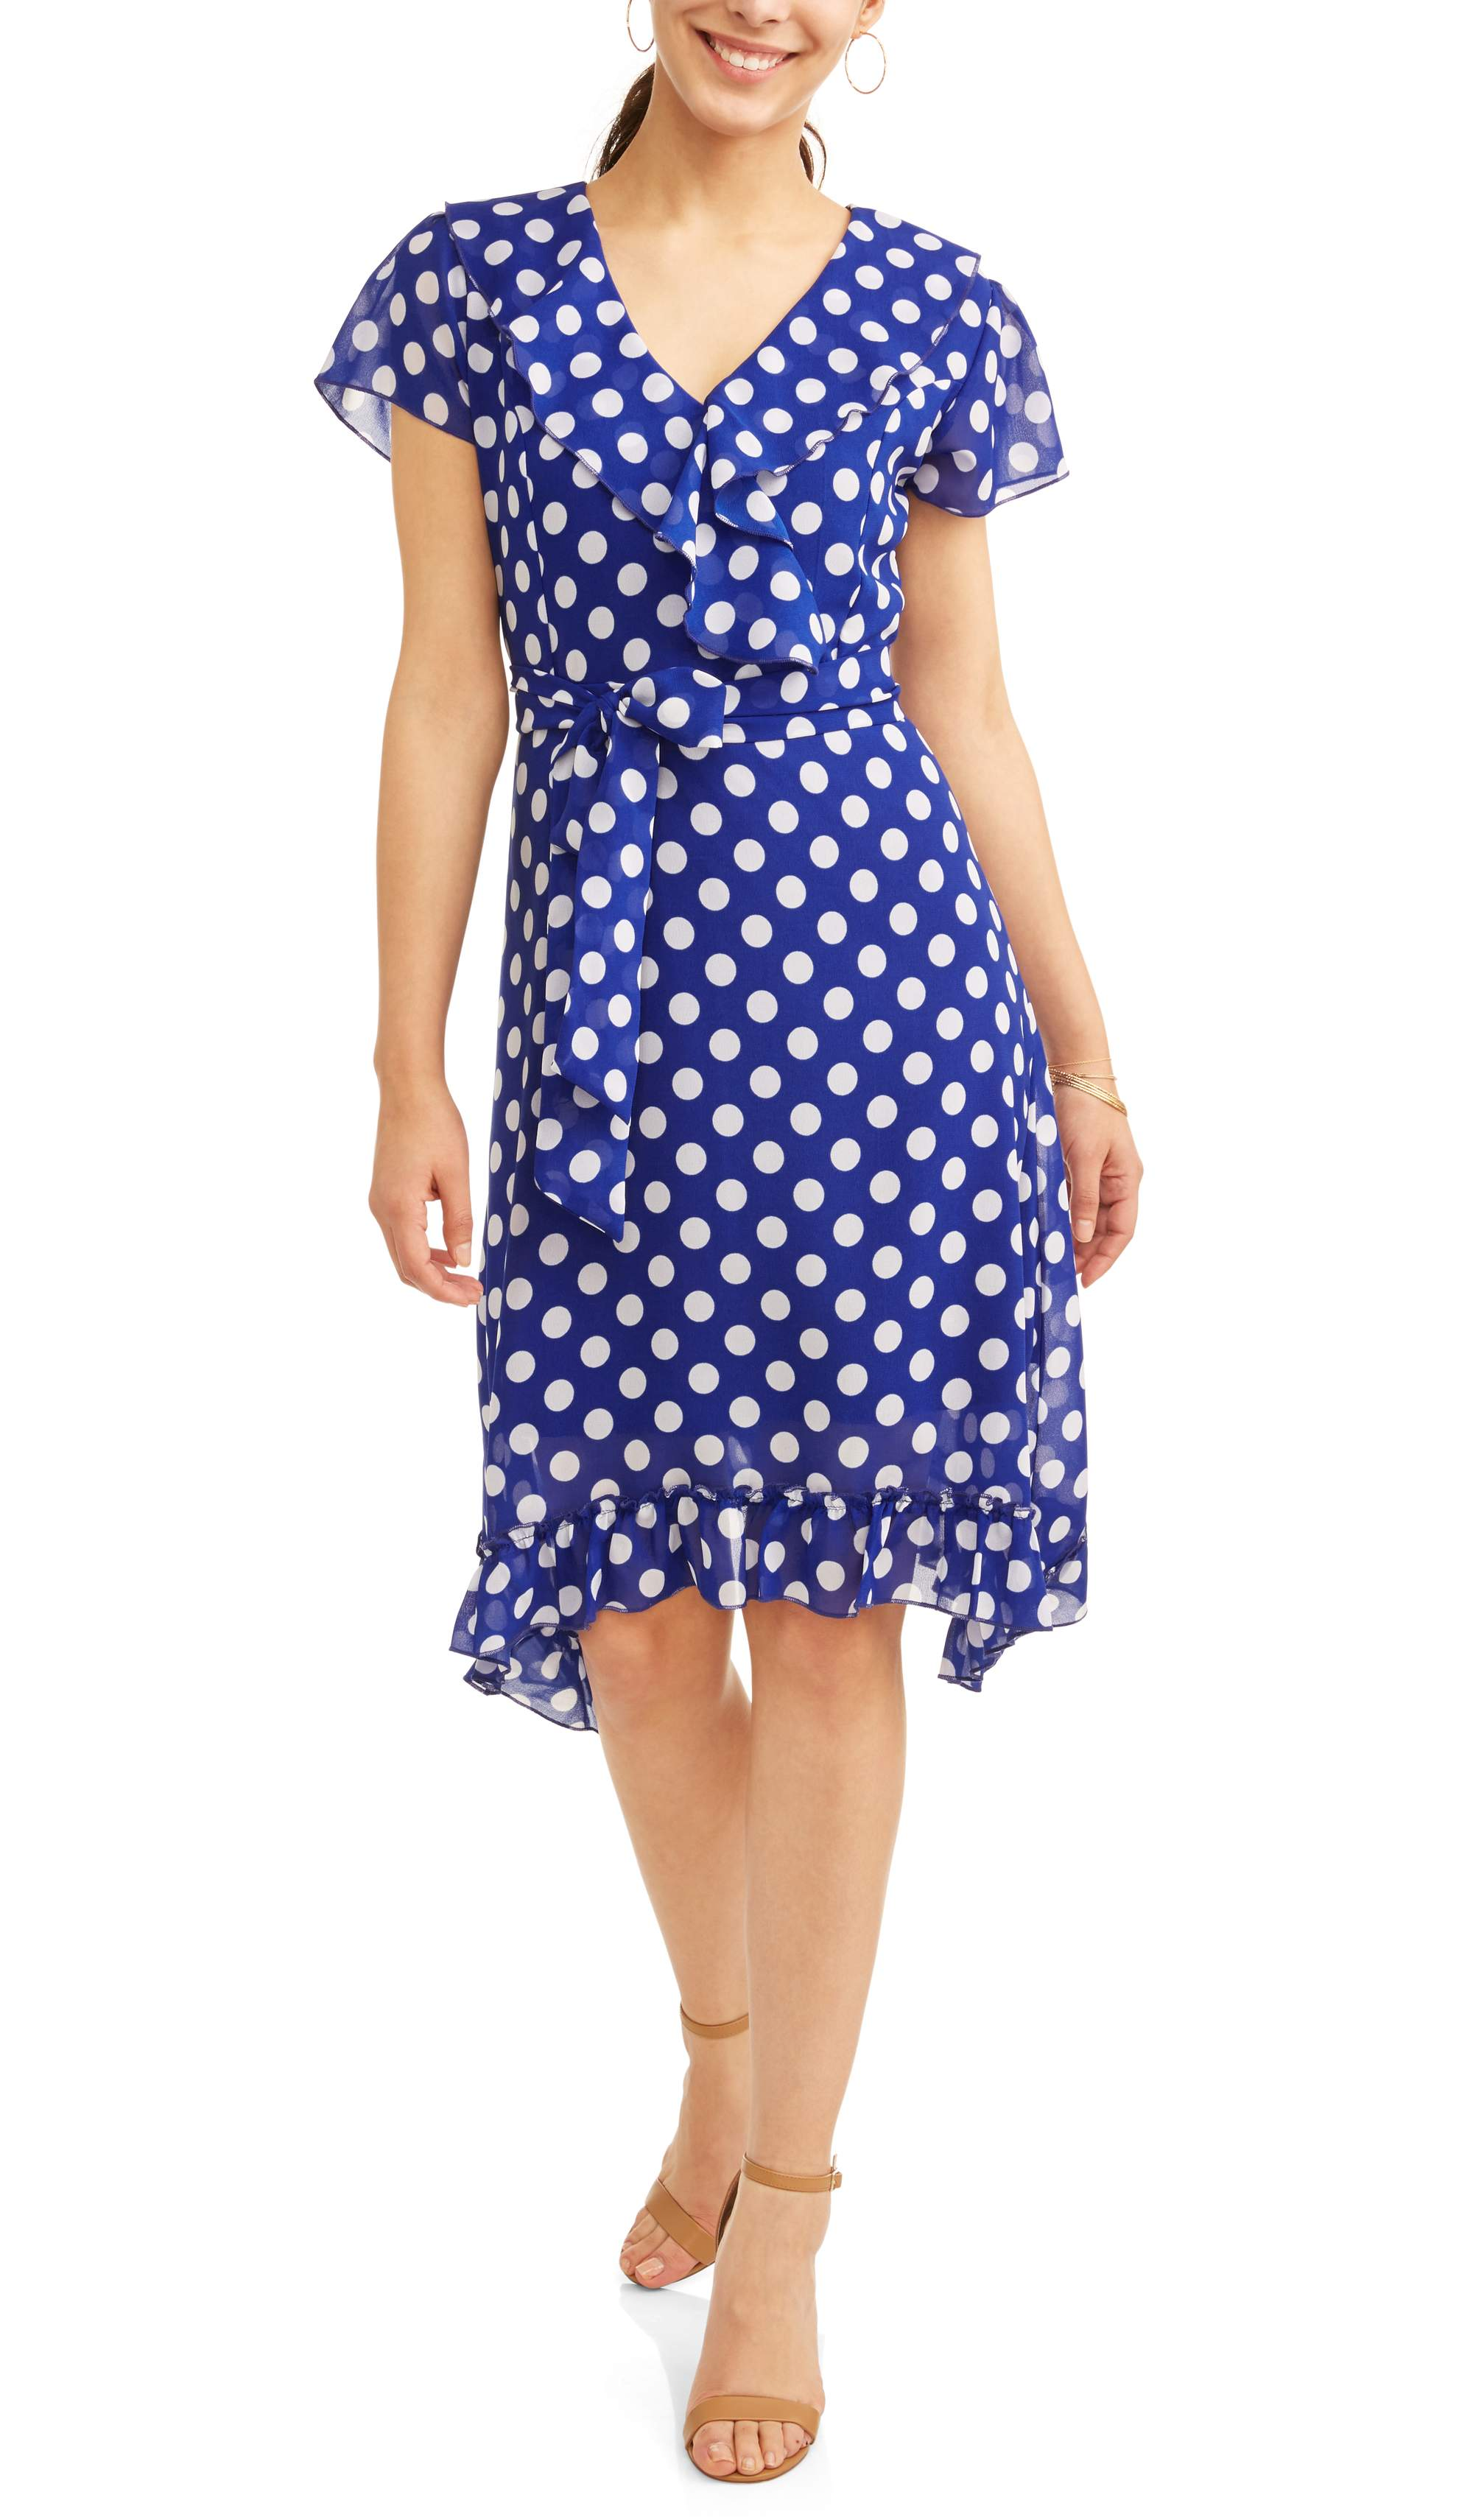 Jaquline Design Studio Women's Ruffle Wrap Polka Dot Dress by Generic